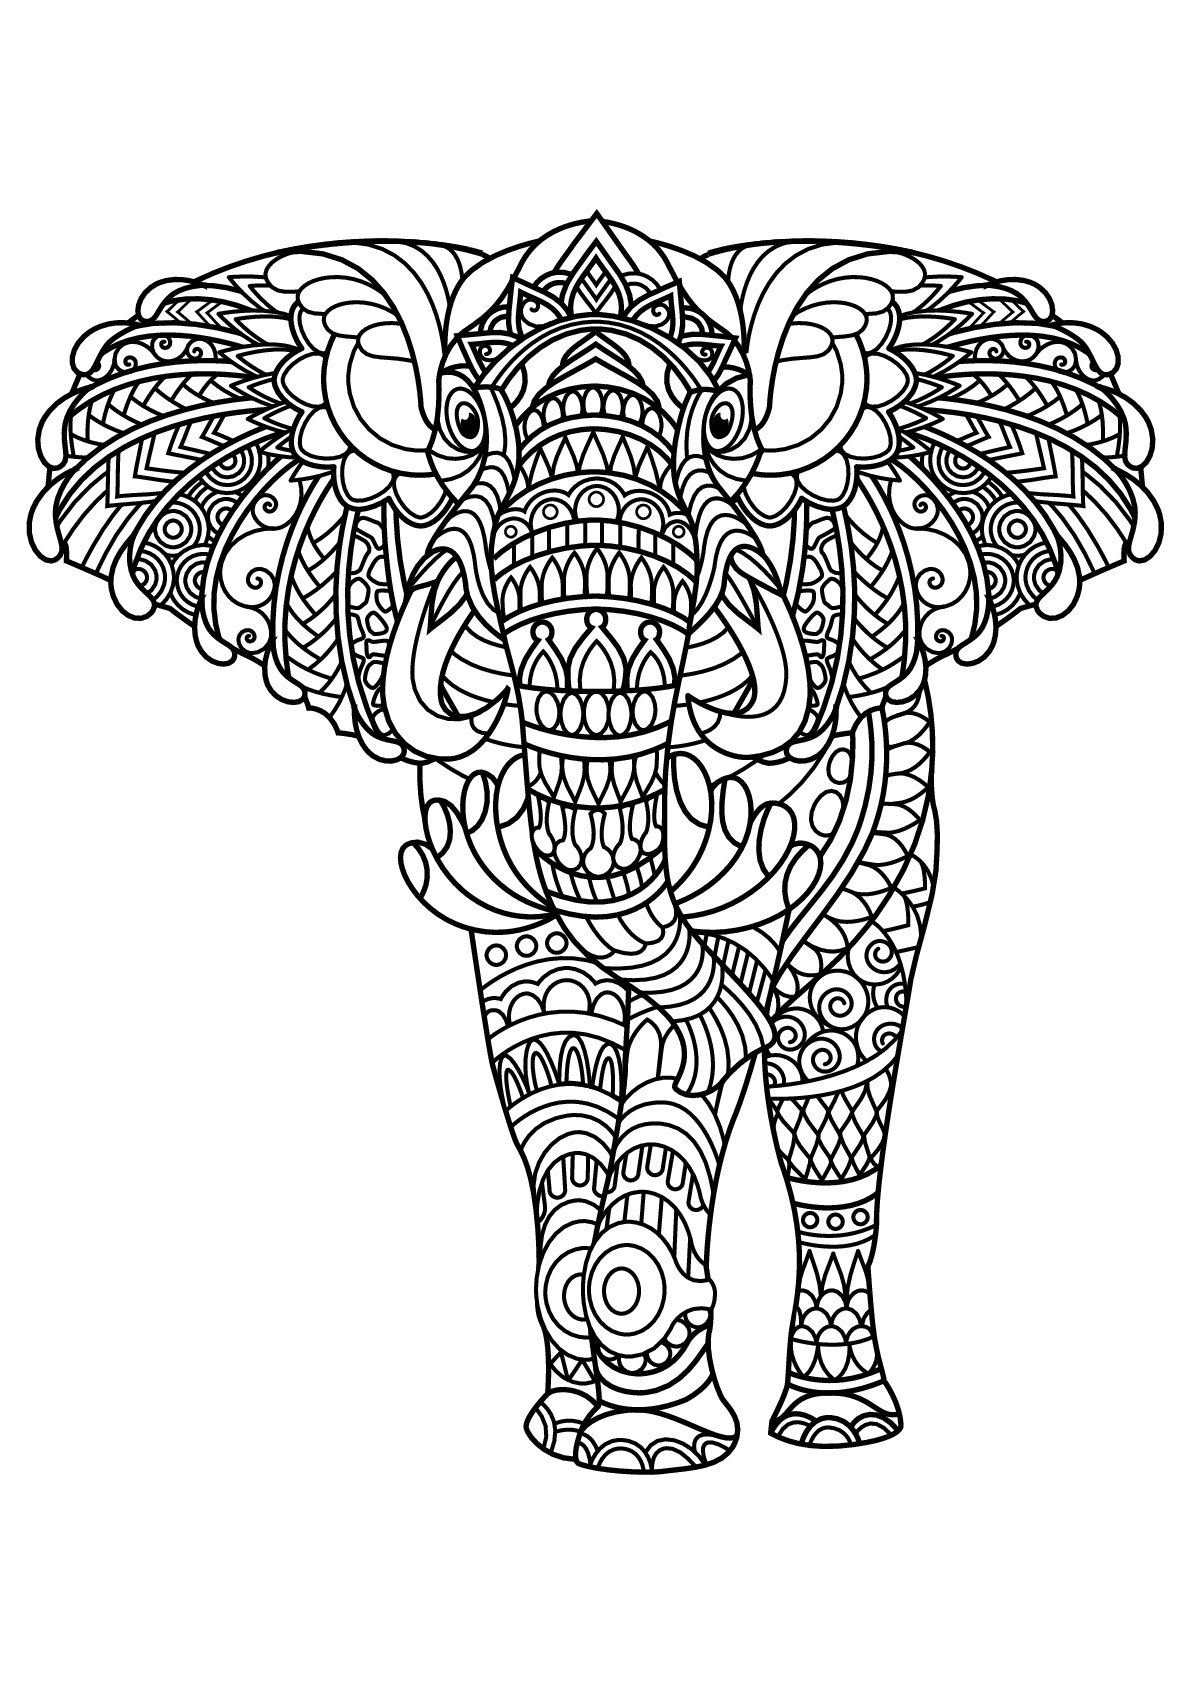 coloring pages elephants free book elephant elephants adult coloring pages coloring pages elephants